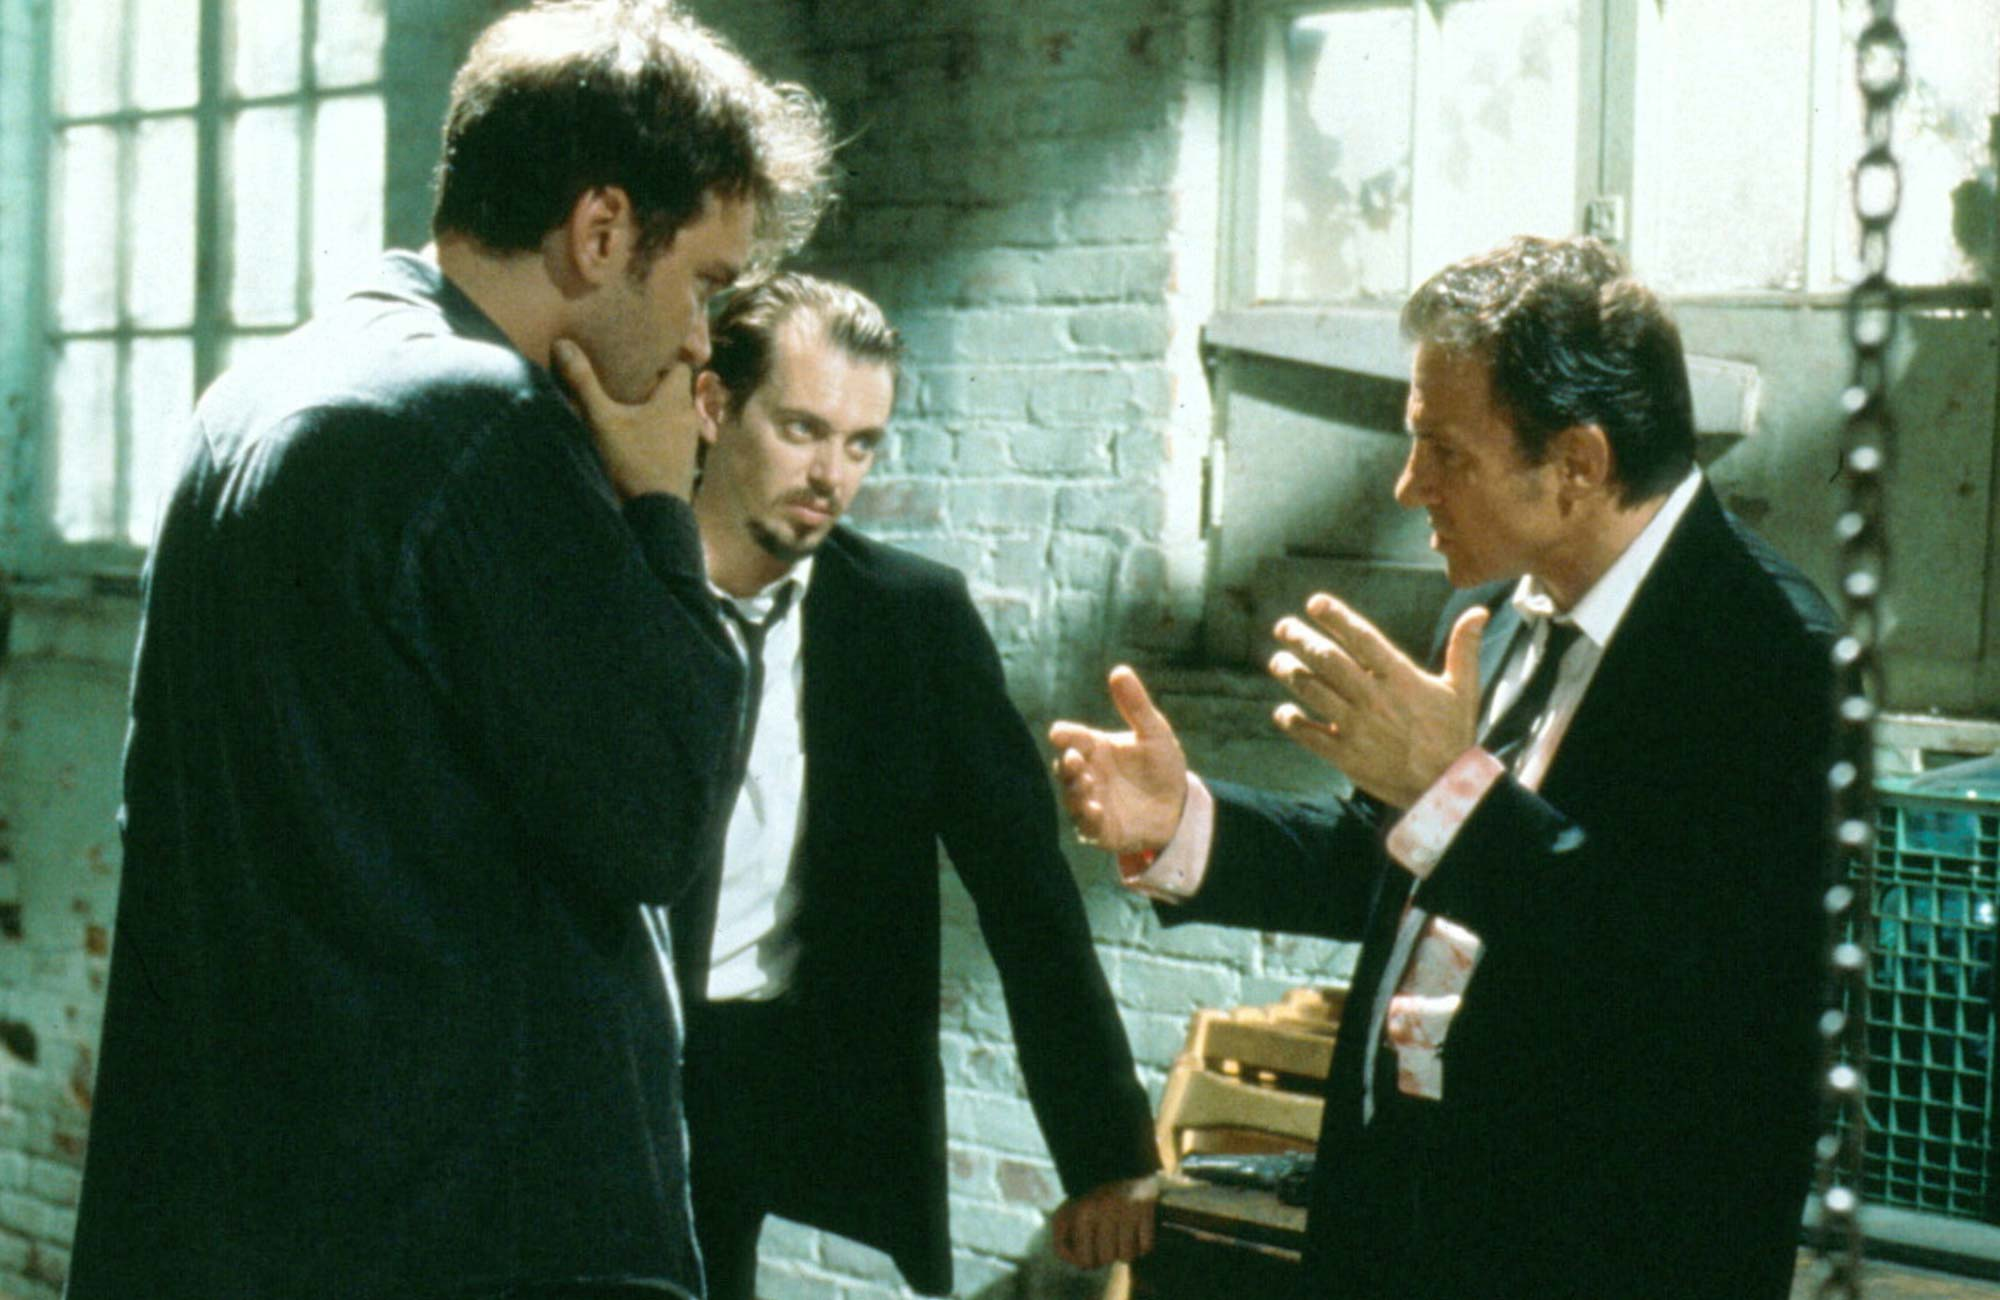 Reservoir Dogs turns 25